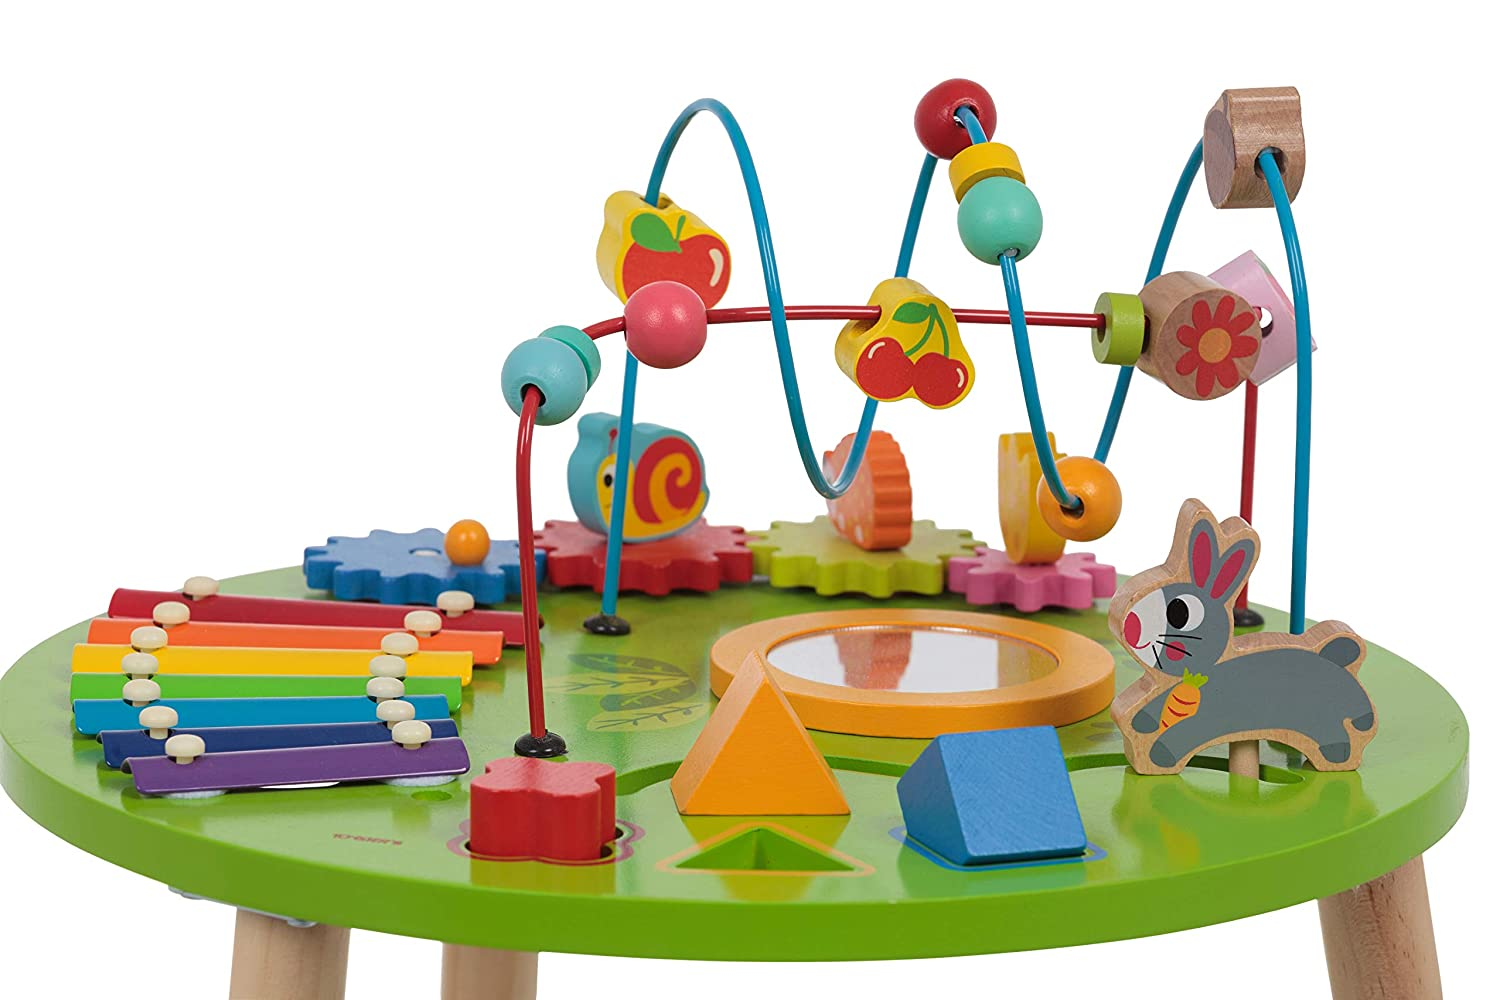 Shape Block Puzzle for 1 Year Old Boy and Girls Wooden Activity Table for Toddlers Multi-Purpose Children/'s Educational Learning Play Toy Set ED435 TOYSTERS Playset Easel with Bead Maze